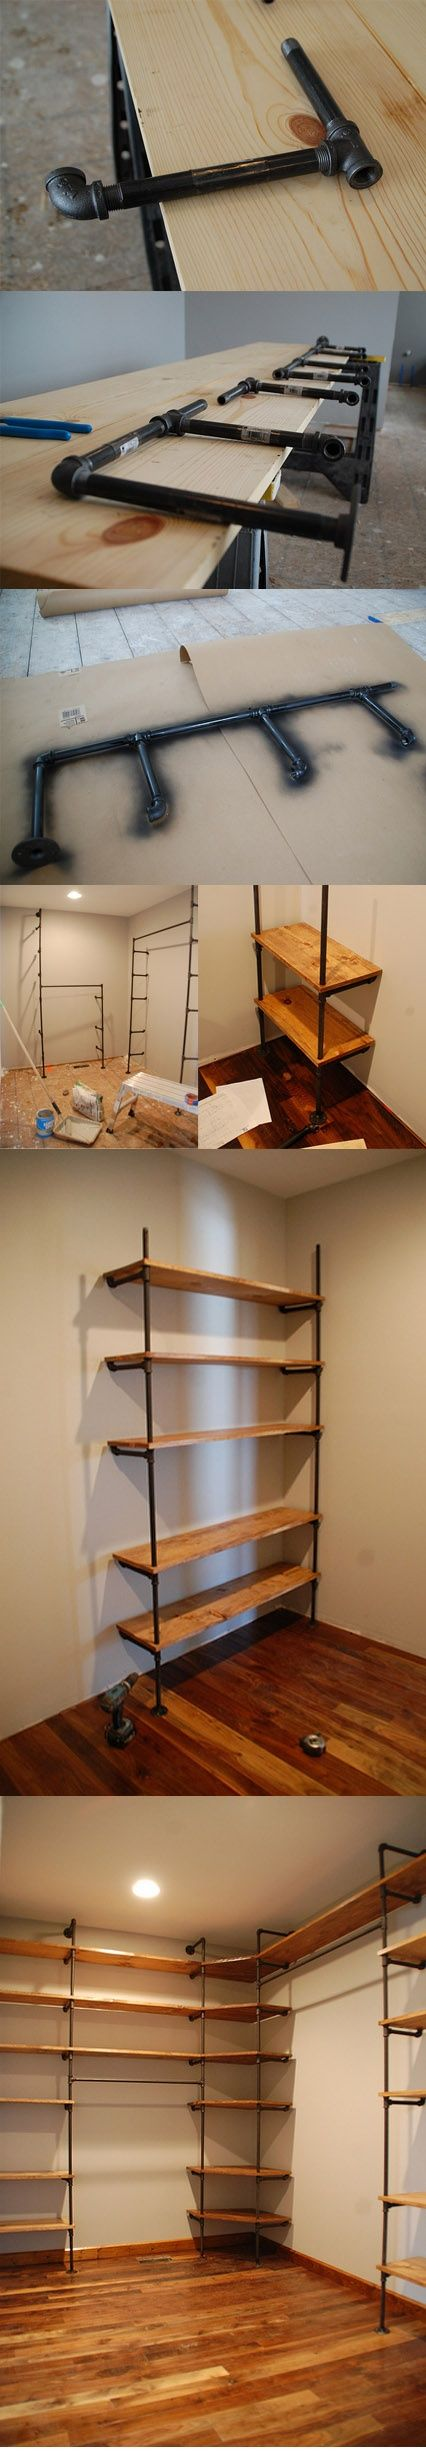 DIY: Piping and wood shelving for closets ♥